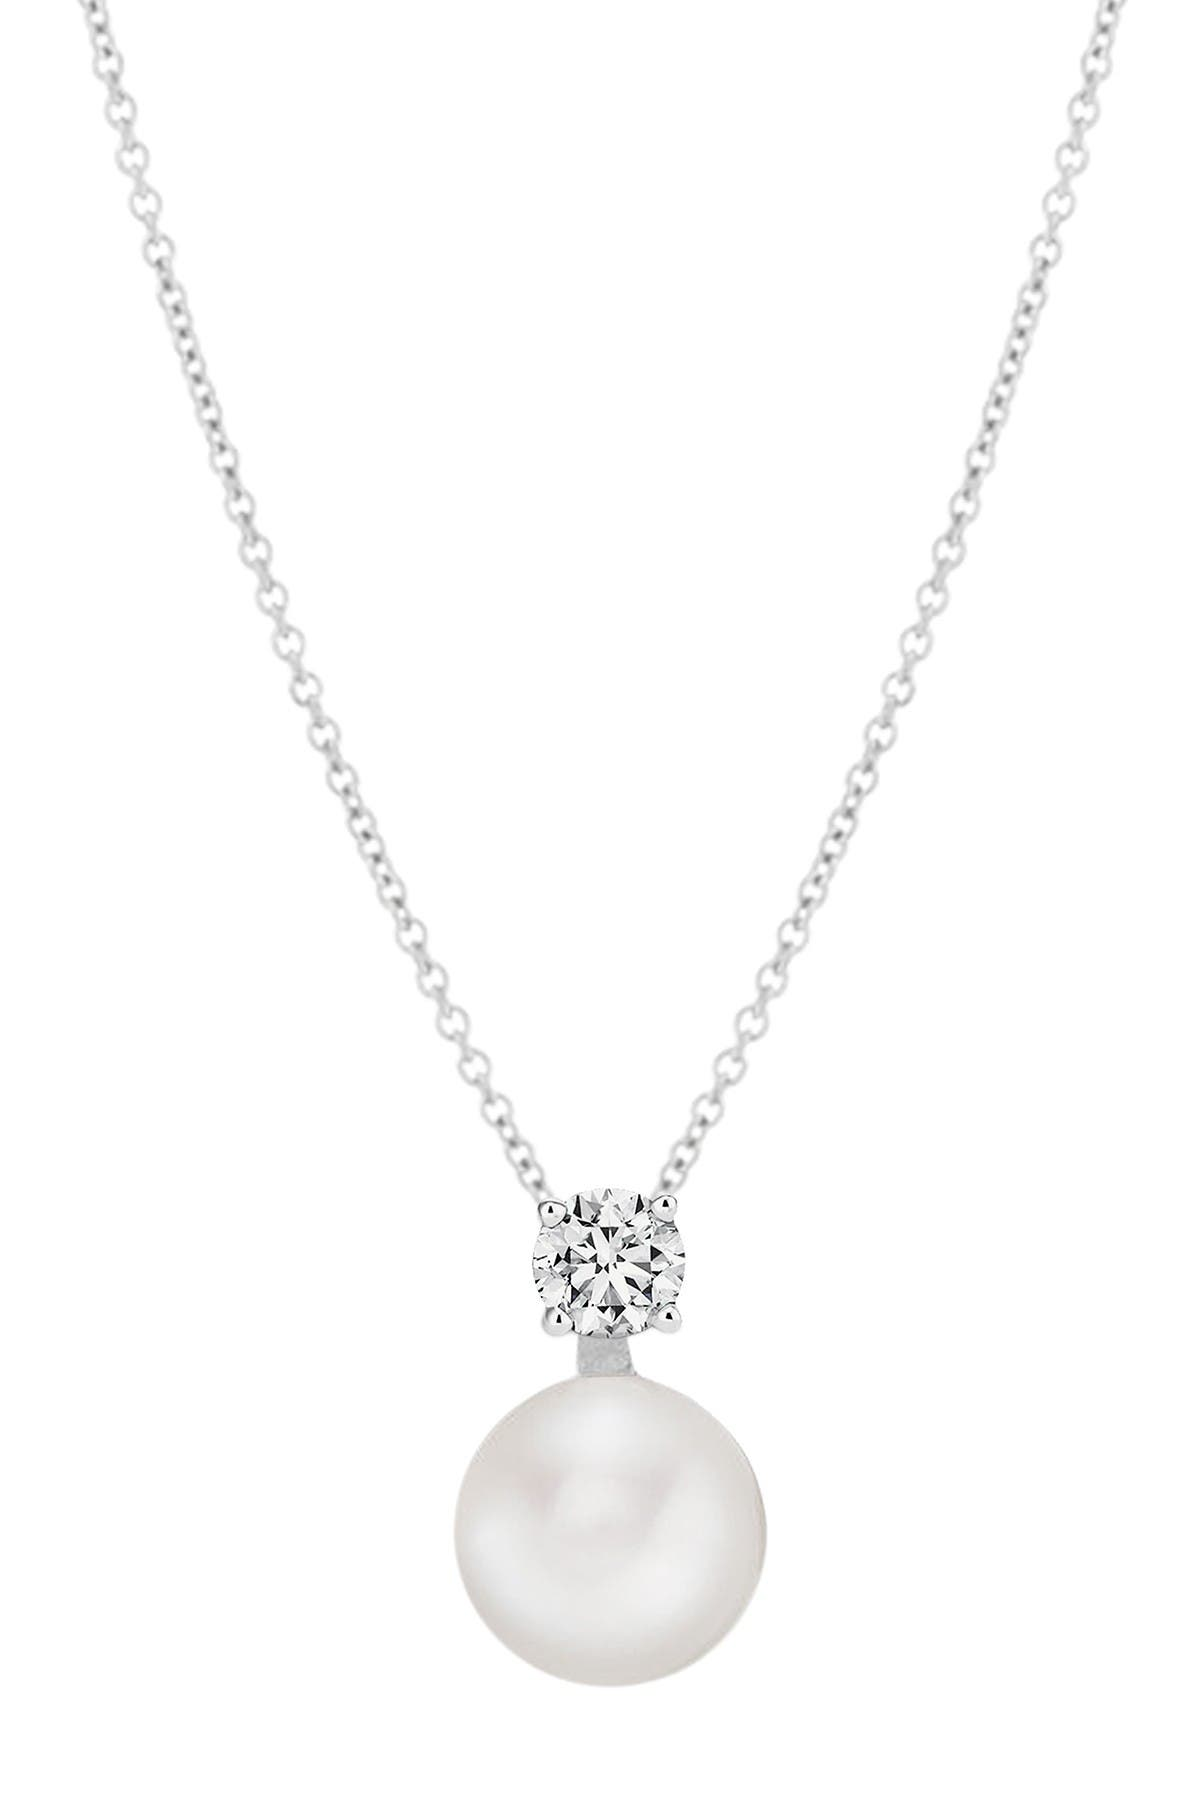 Image of Savvy Cie Sterling Silver Cubic Zirconia Button 9-10mm Pearl Drop Pendant